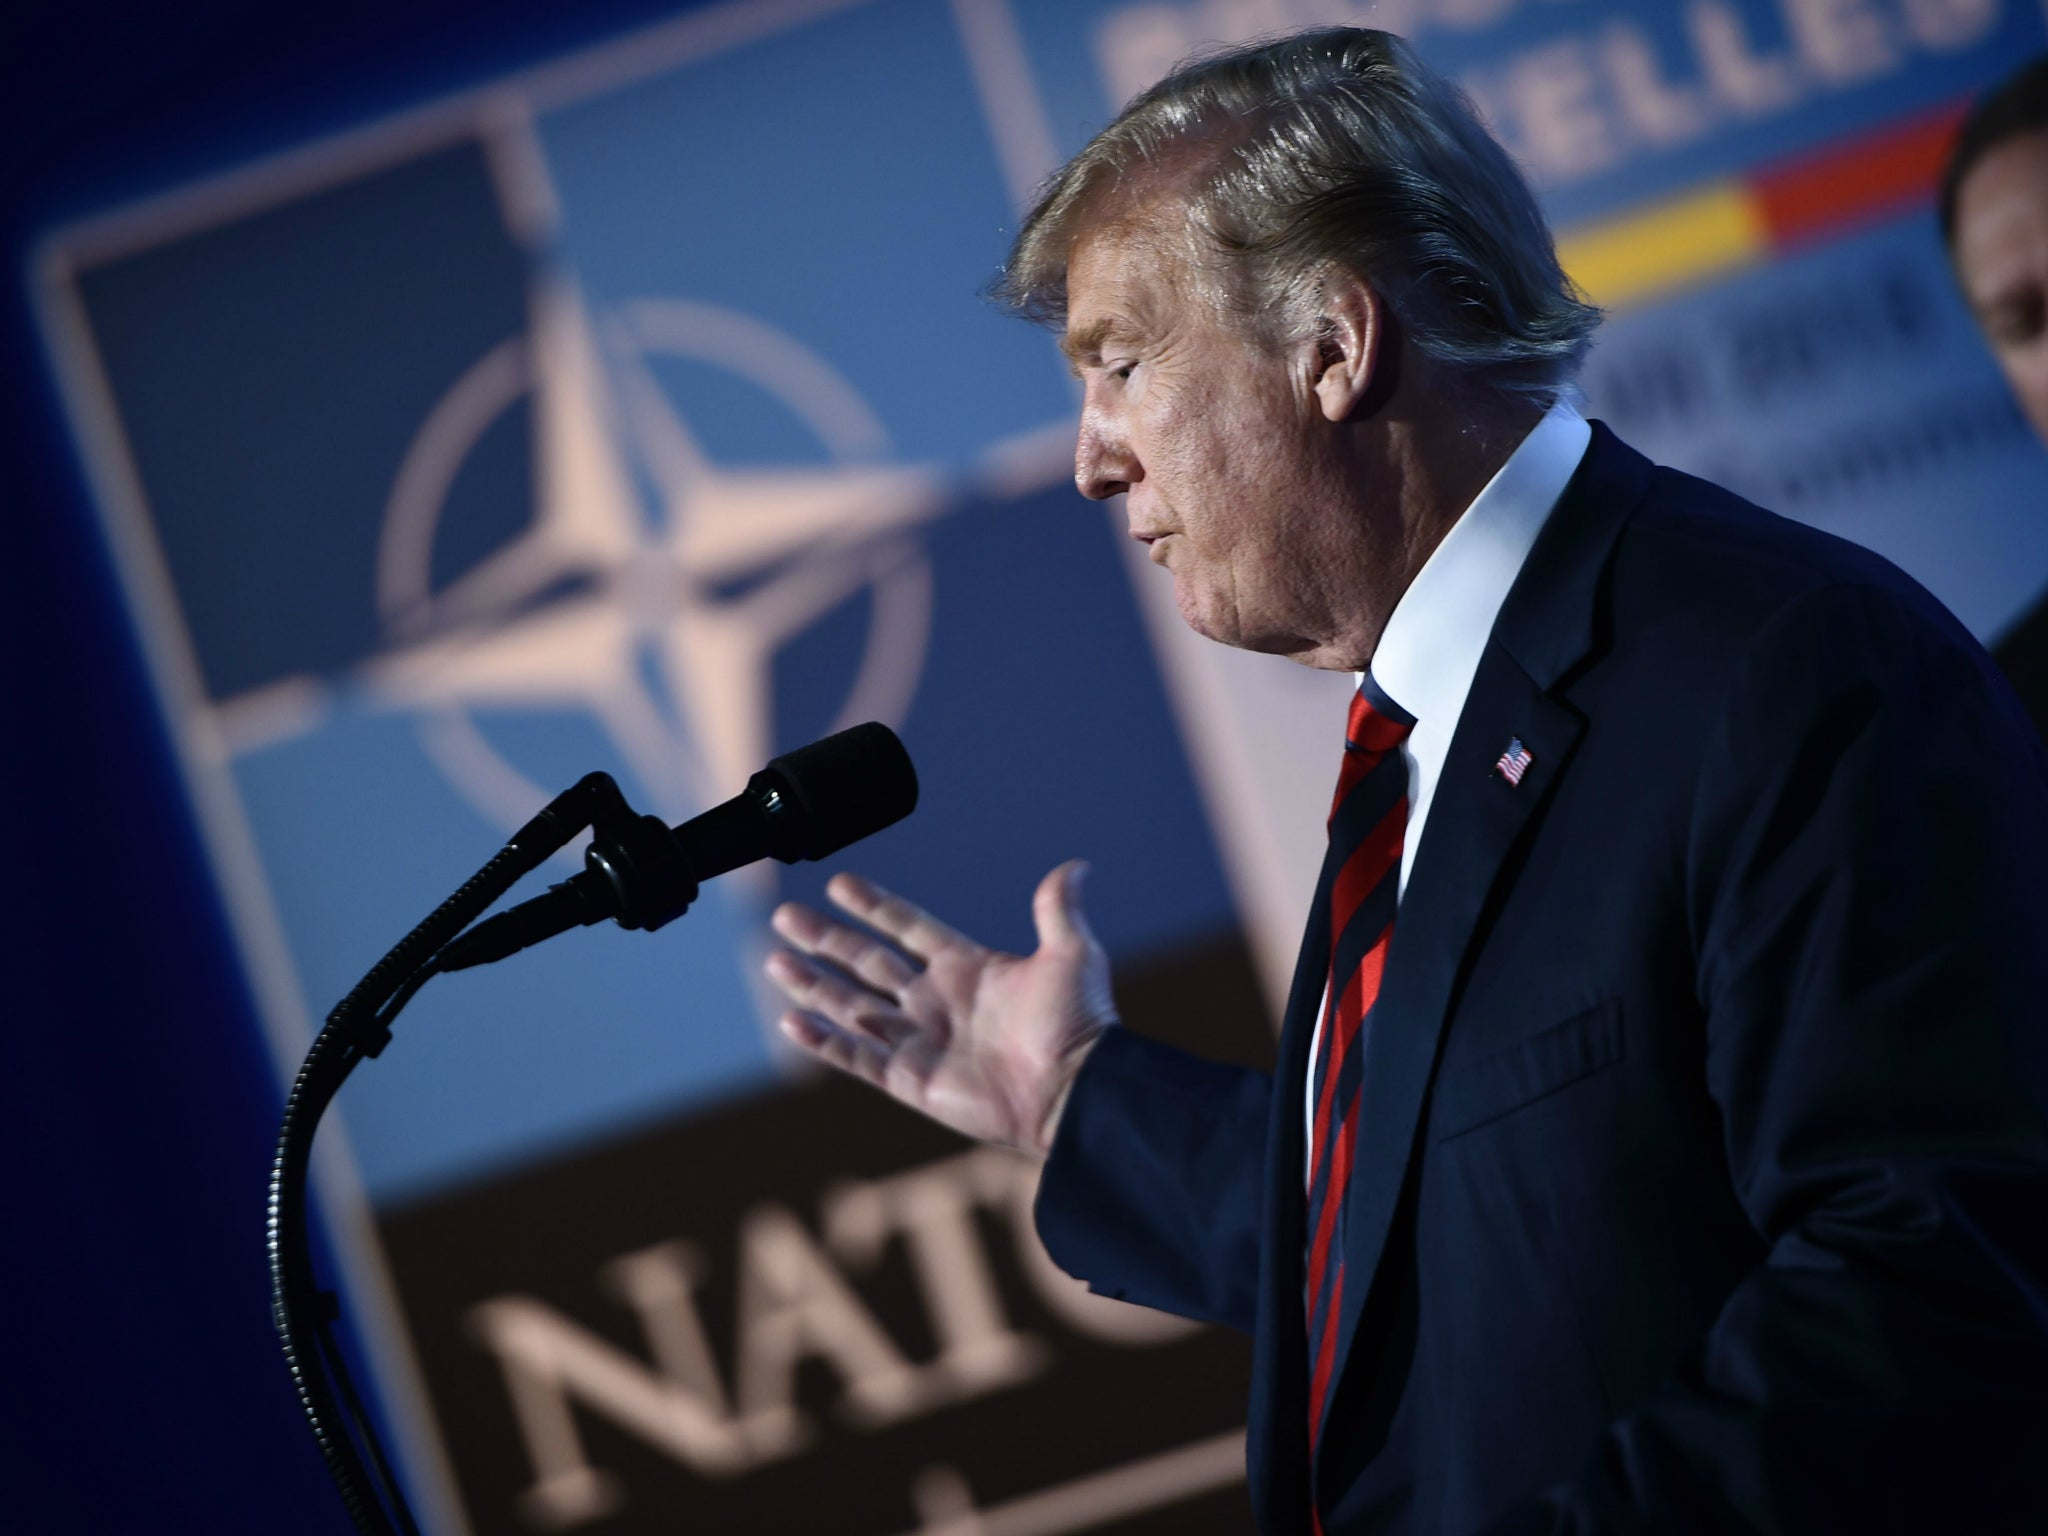 Trump says defending 'aggressive' Montenegro as a Nato member 'will lead to World War III'